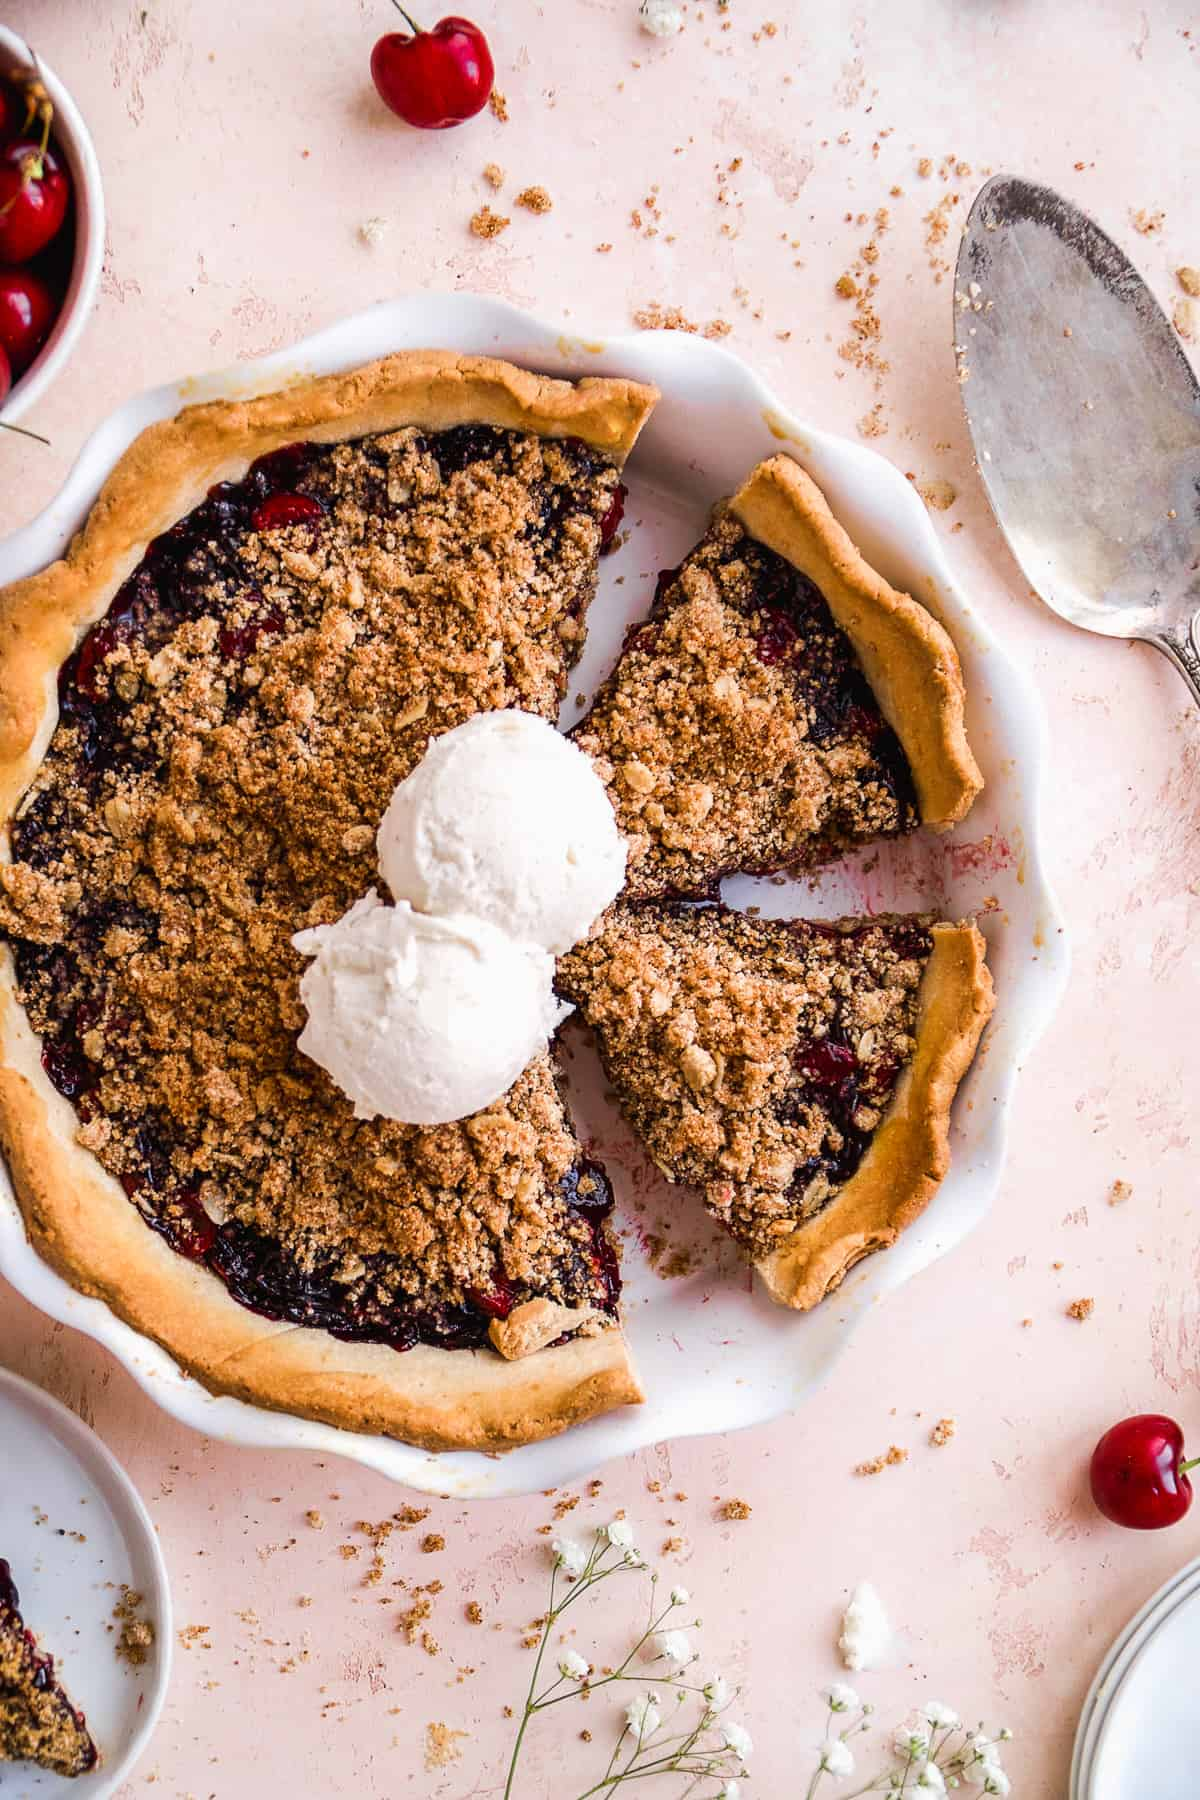 Cherry pie cut into slices with ice cream scoops in the middle on a pink surface.